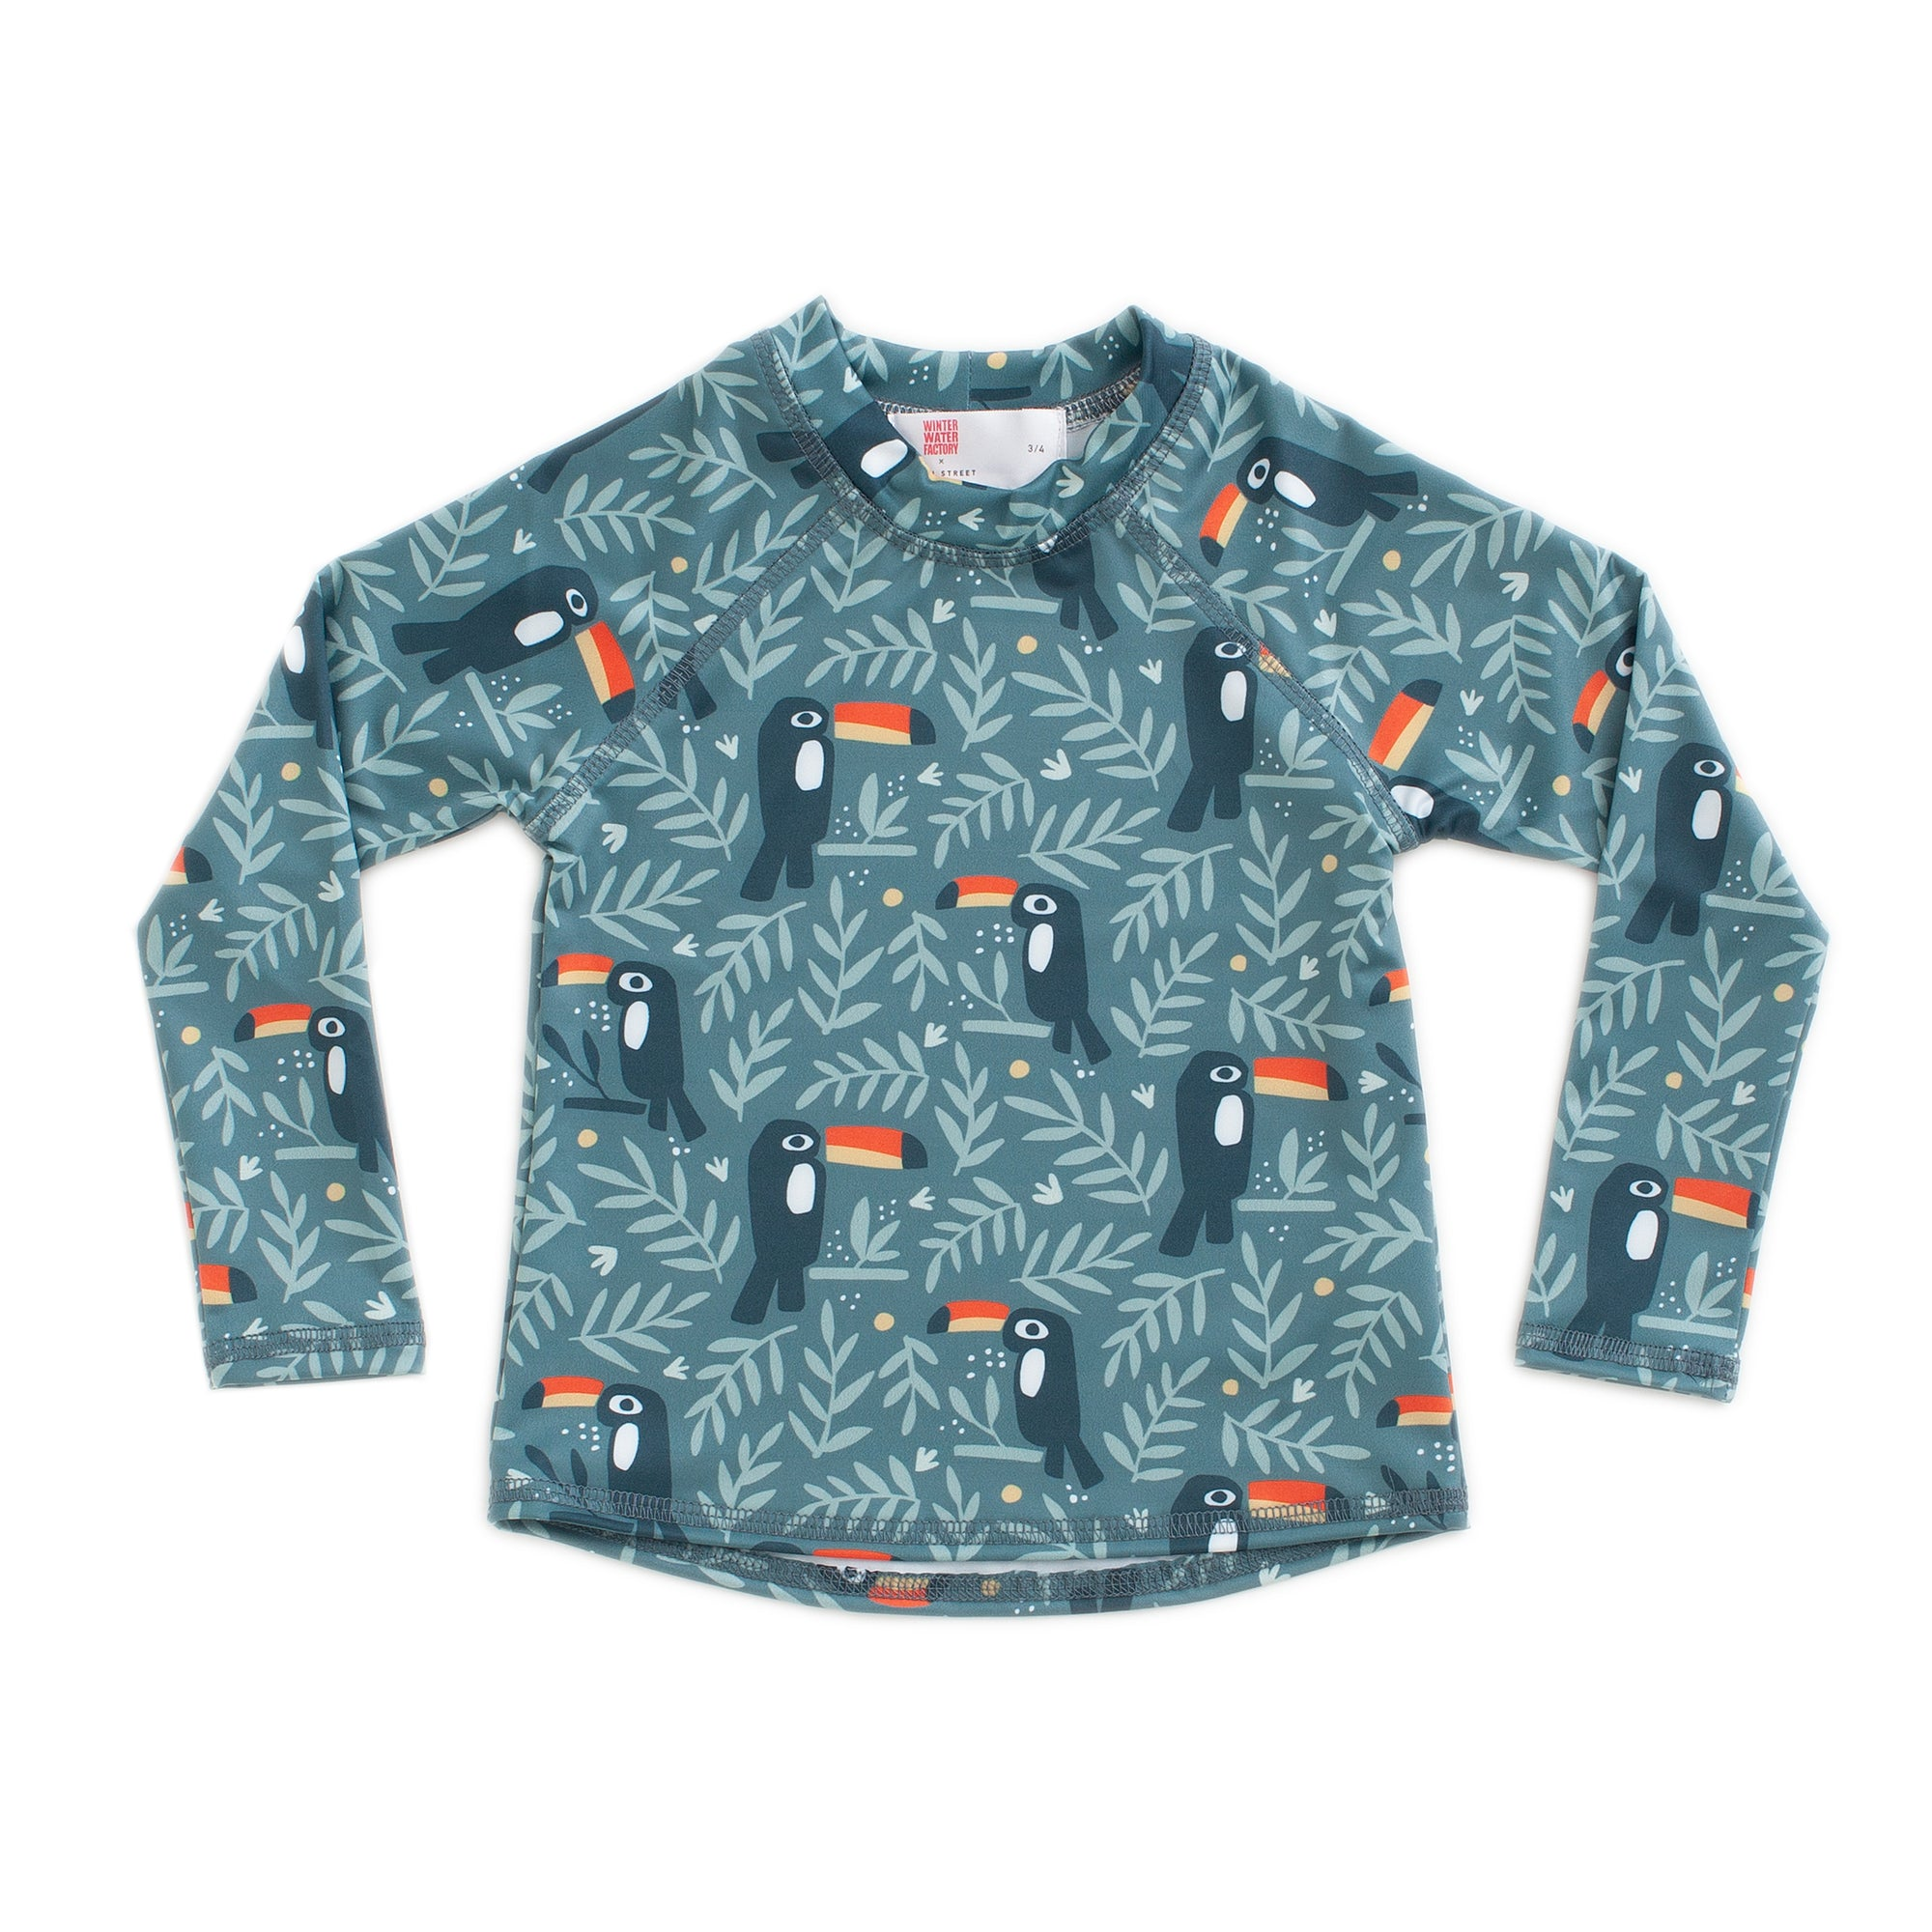 Winter Water Factory x Pearl Street Swim Toucans Original Rashguard